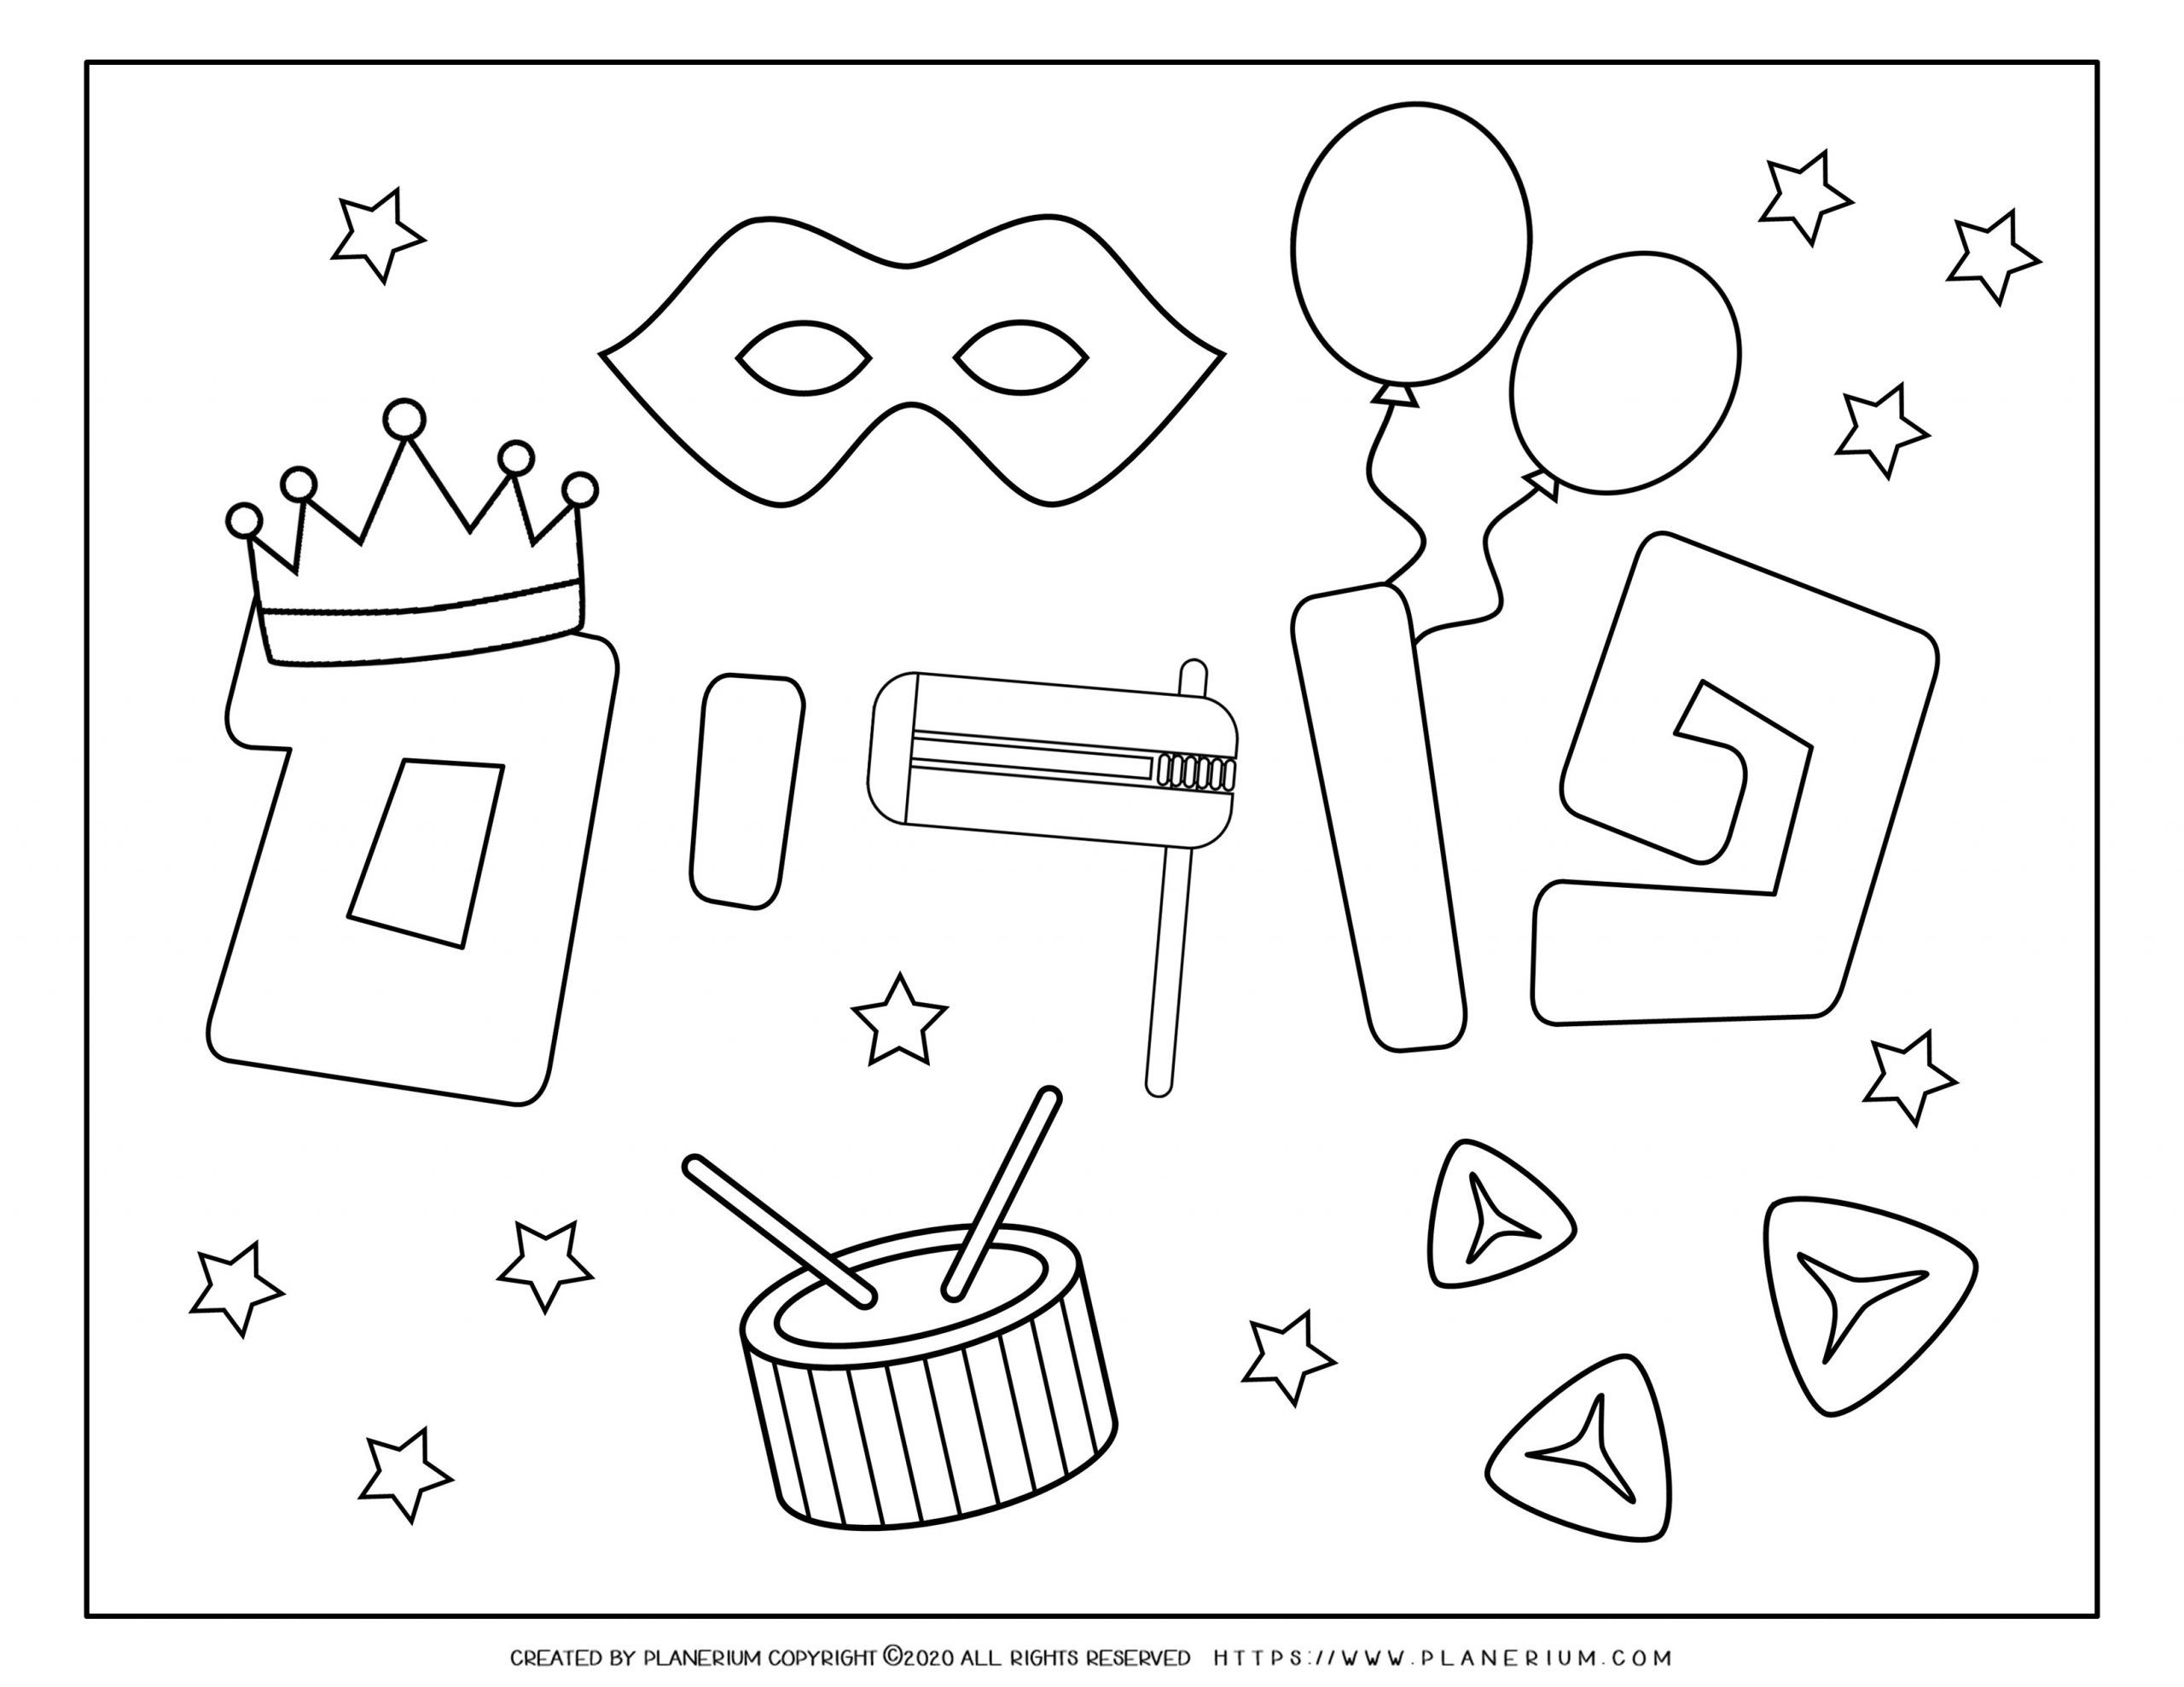 Purim 2020 - Coloring - Holiday Symbols and stars